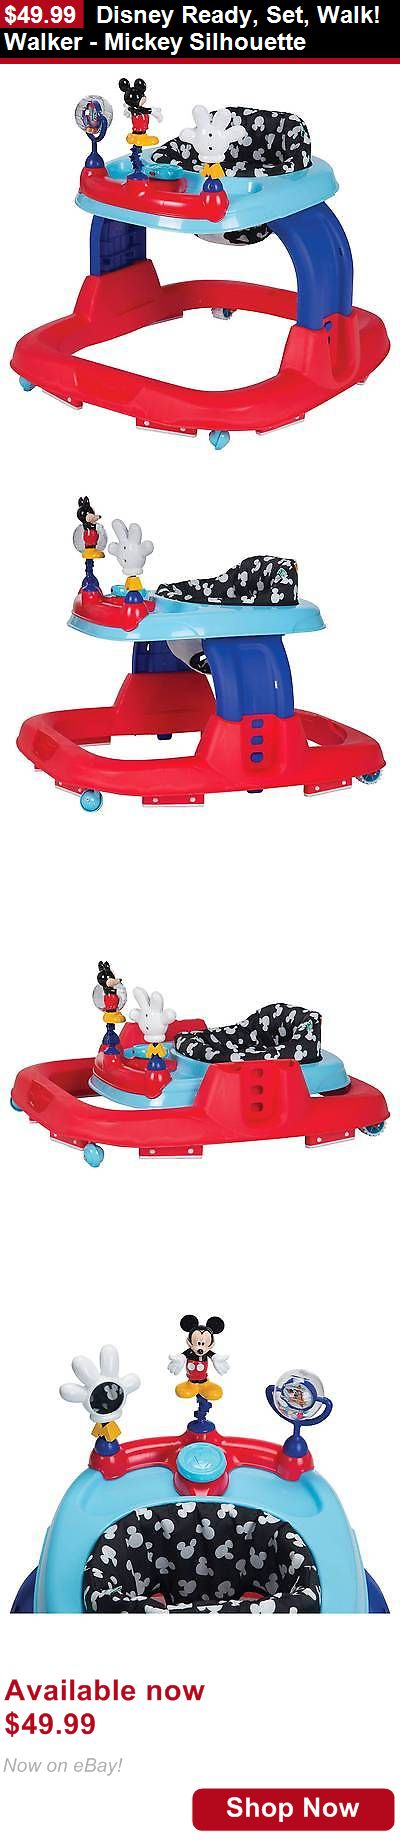 Baby walkers: Disney Ready, Set, Walk! Walker - Mickey Silhouette BUY IT NOW ONLY: $49.99